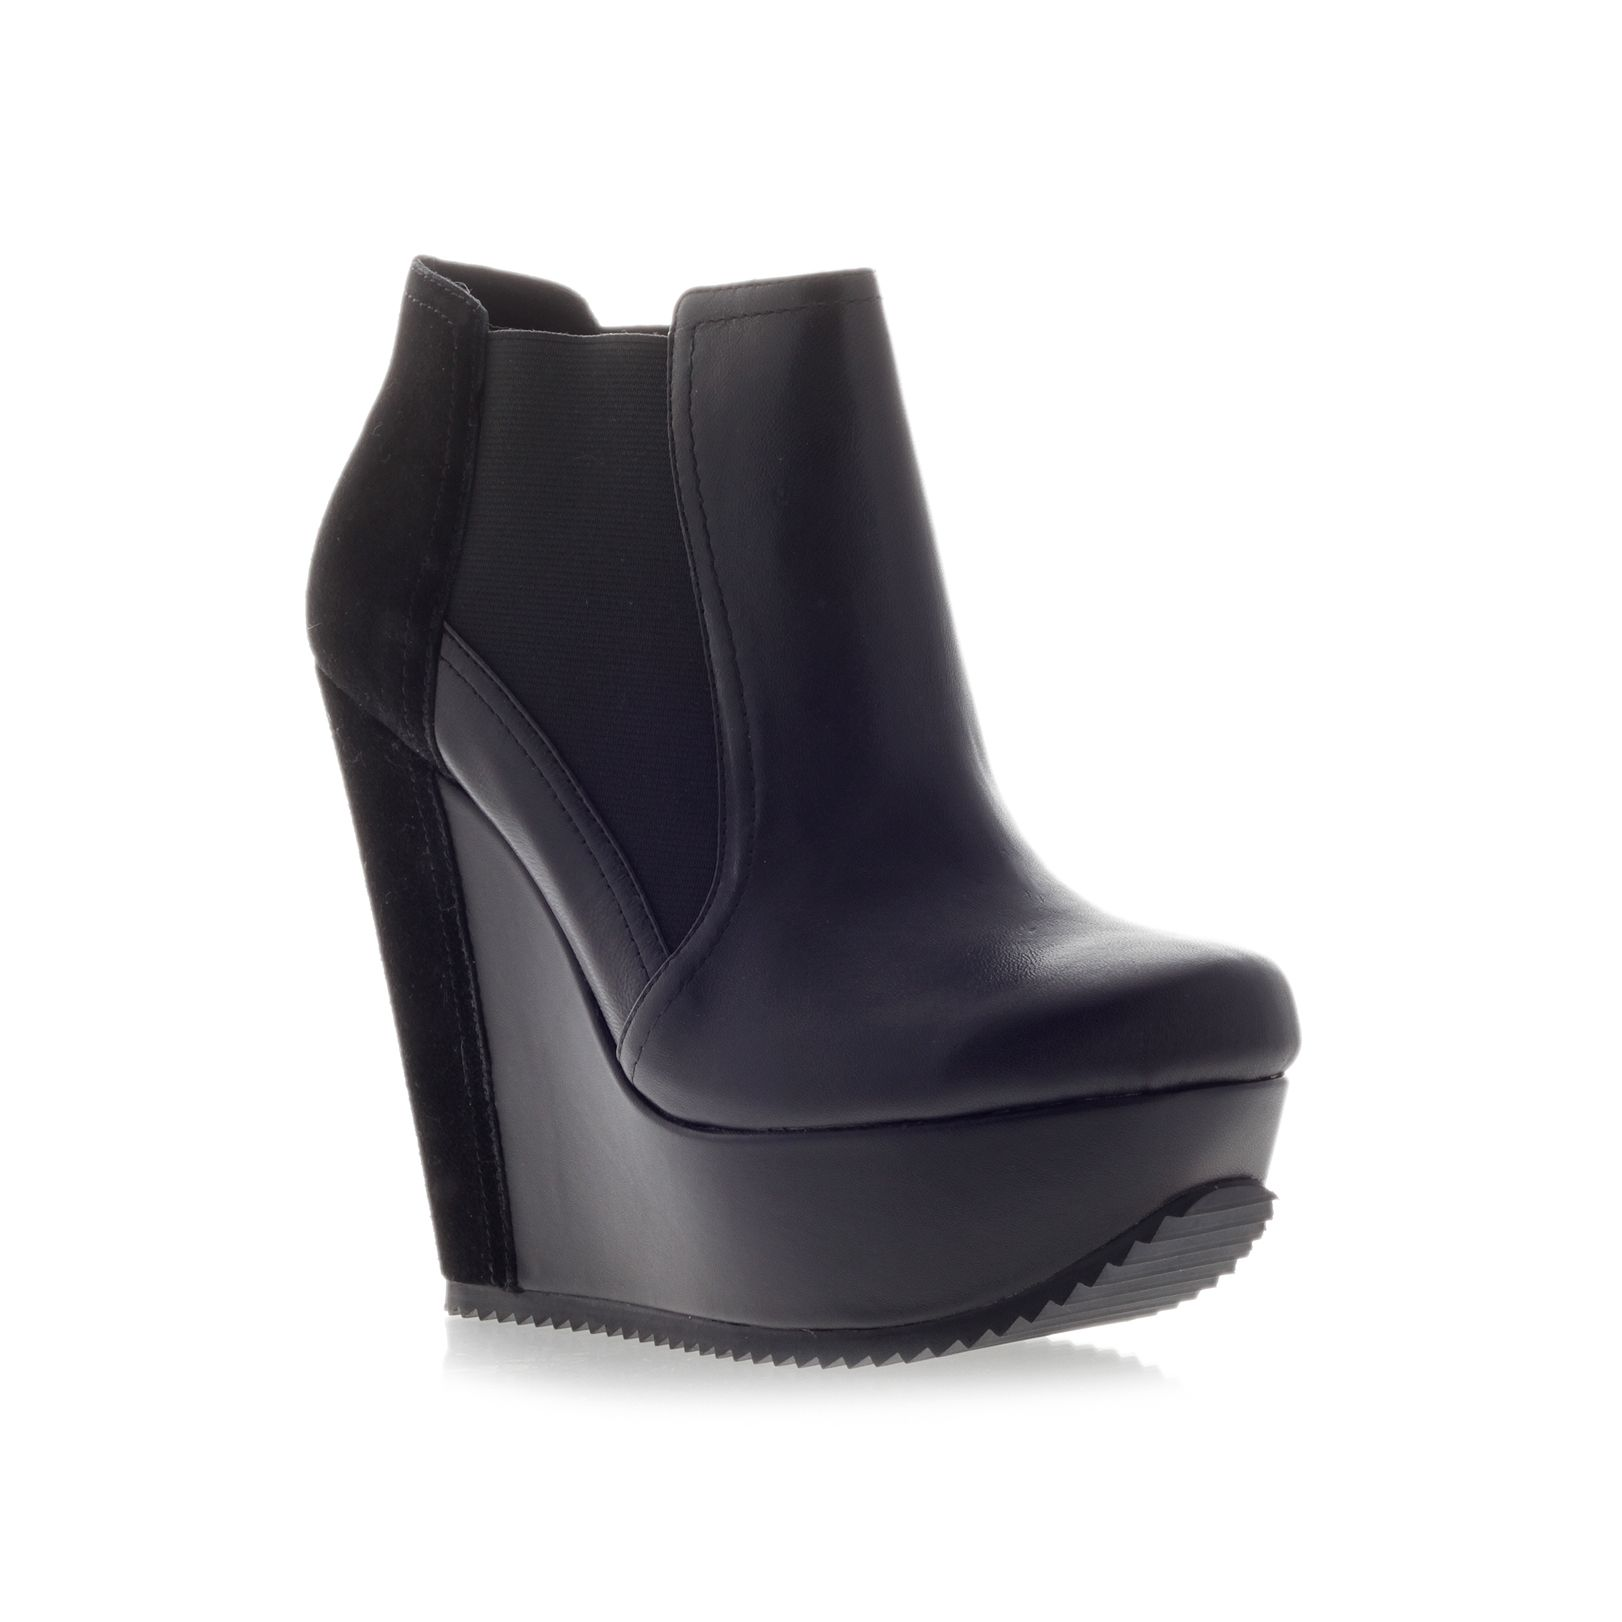 Stanley wedge boots